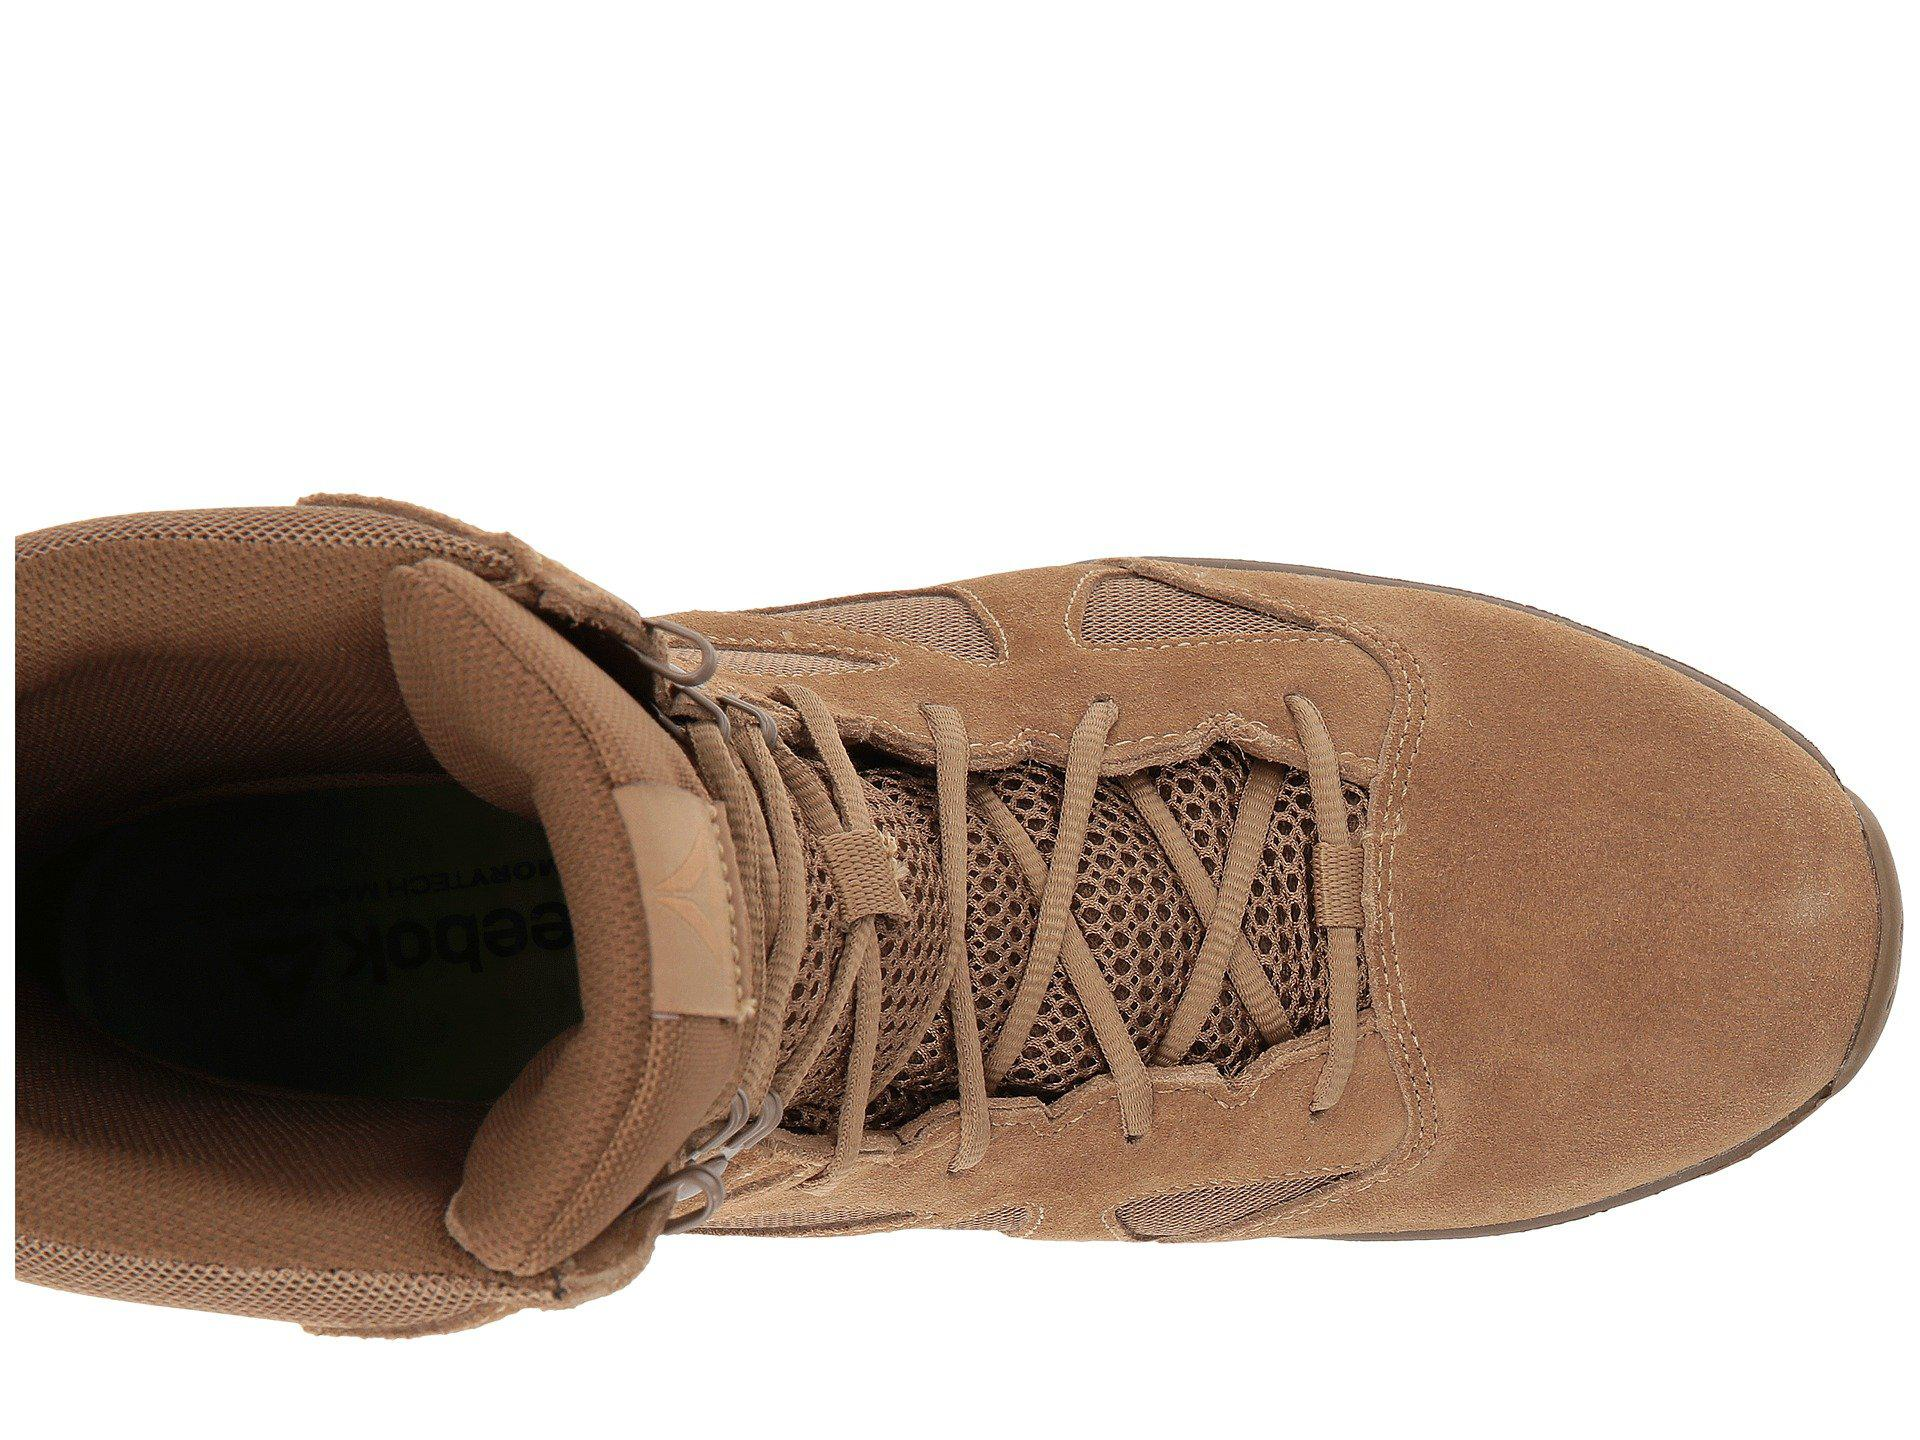 Reebok - Brown Sublite Cushion Tactical Ar670-1 Compliant (coyote) Men s  Boots for. View fullscreen 4beaf240f